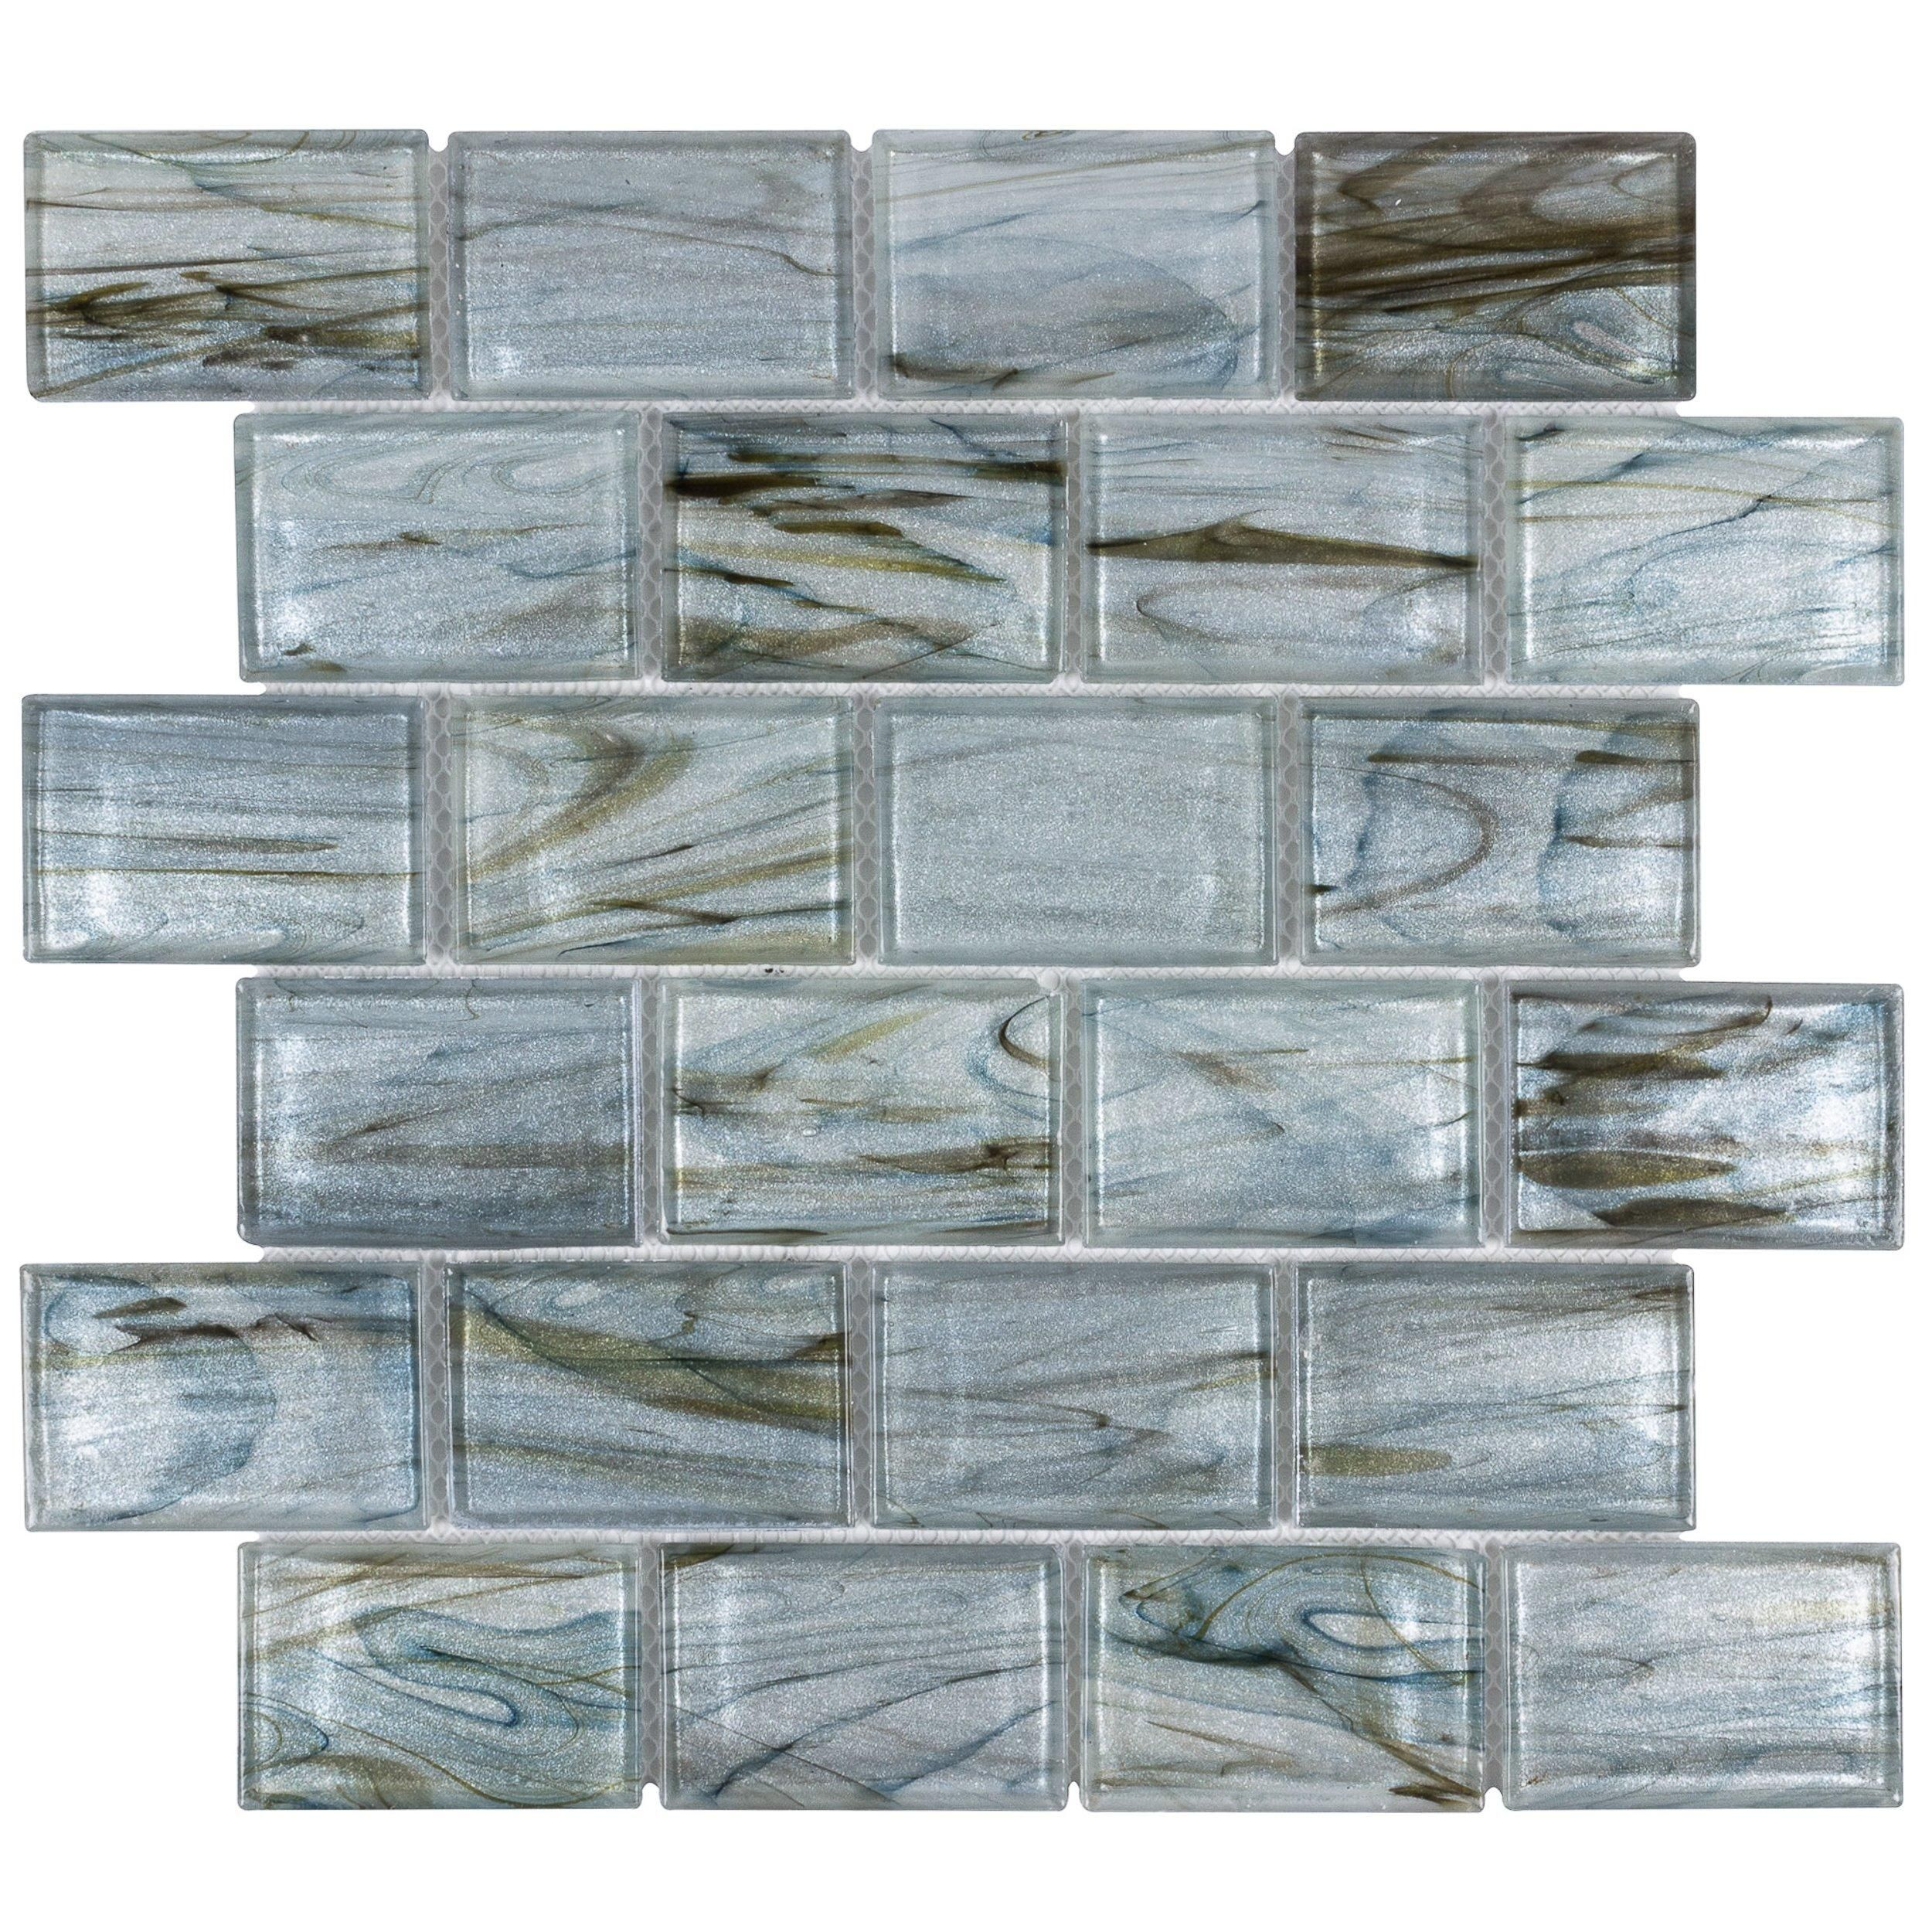 Aurora Sky 2 X 3 In Brick Glass Mosaic Aurora Sky Mosaic Glass Glass Mosaic Tiles